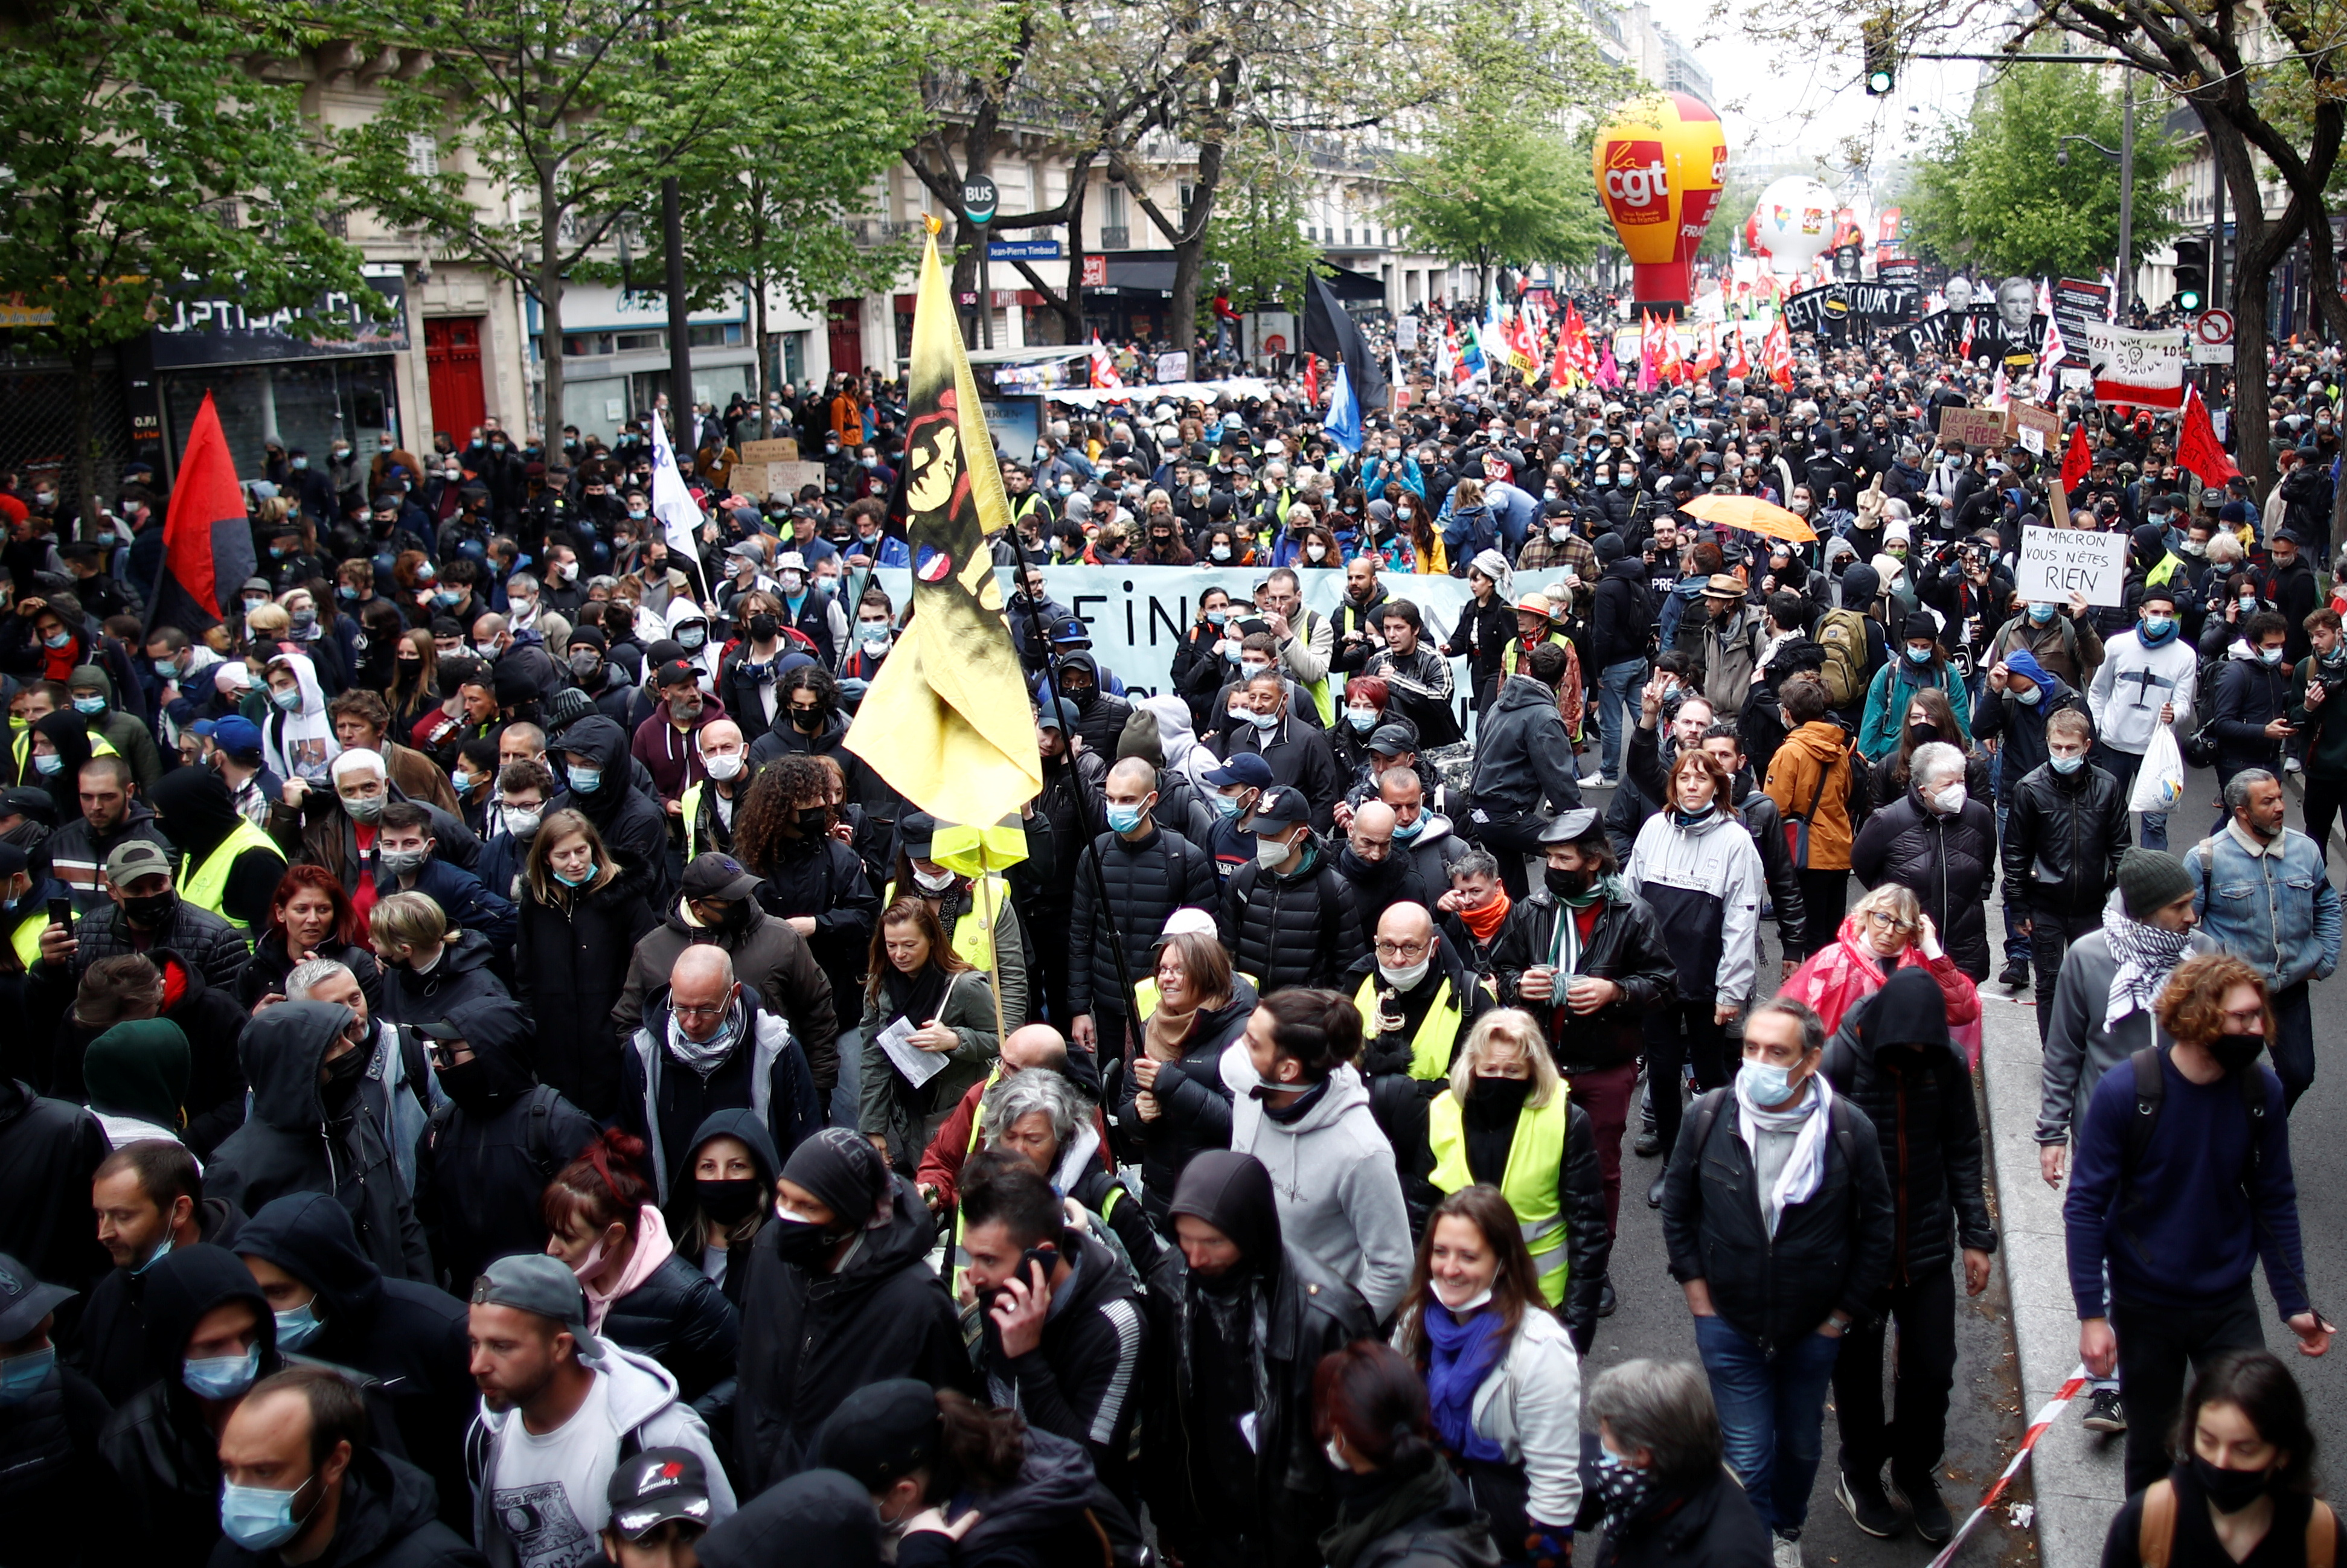 People attend the traditional May Day labour union march, amid the coronavirus disease (COVID-19) outbreak in Paris, France, May 1, 2021. REUTERS/Gonzalo Fuentes